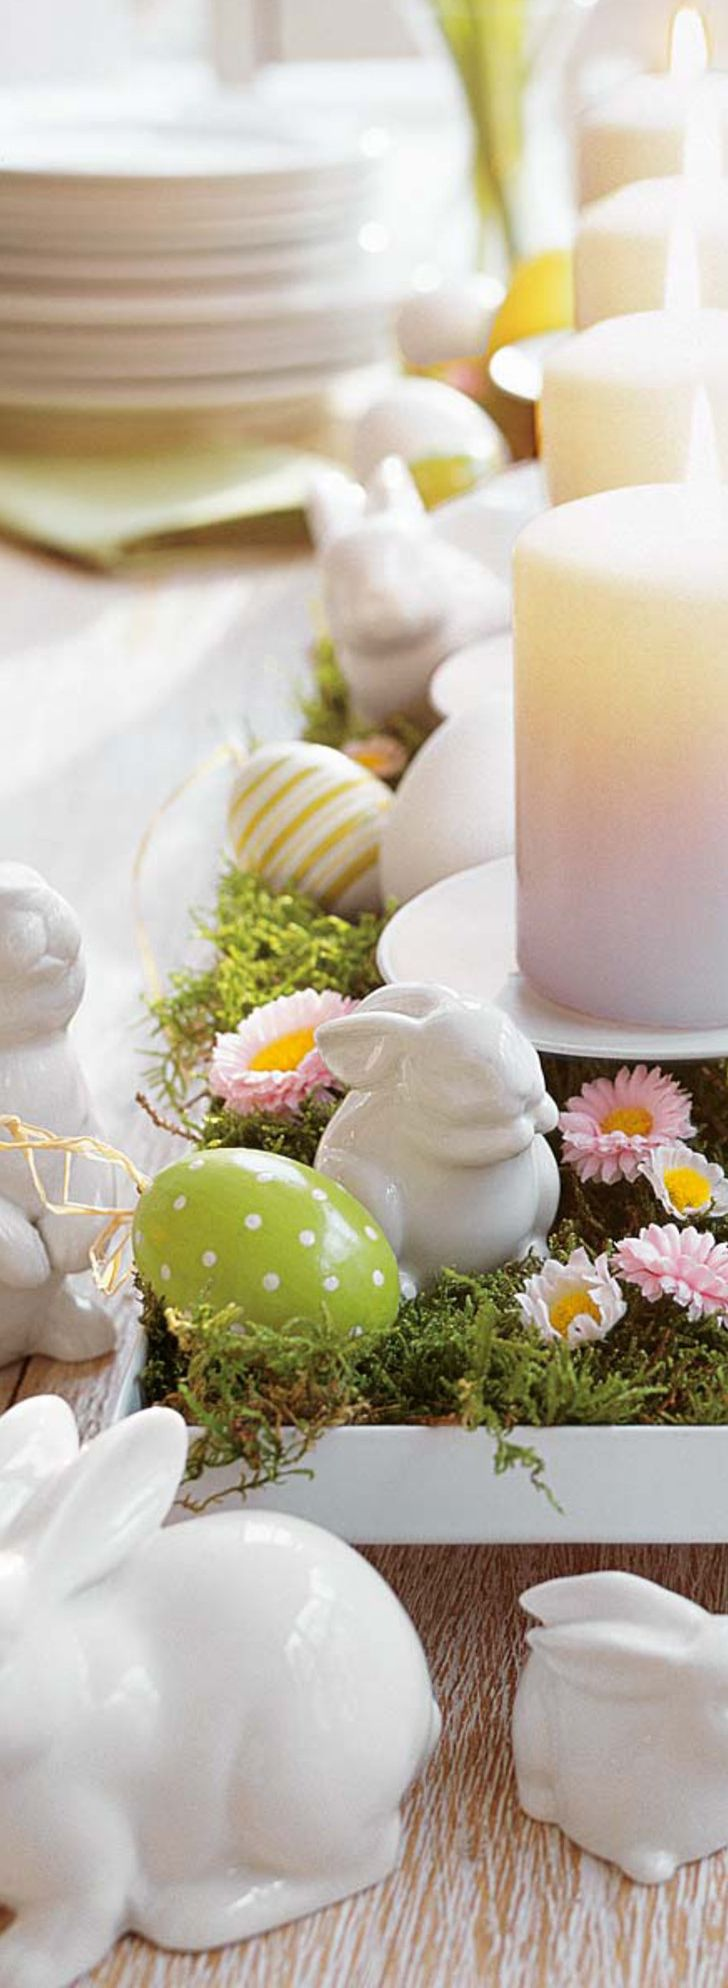 Easter Centerpiece with Bunnies and Candles | Easter Decorating Ideas